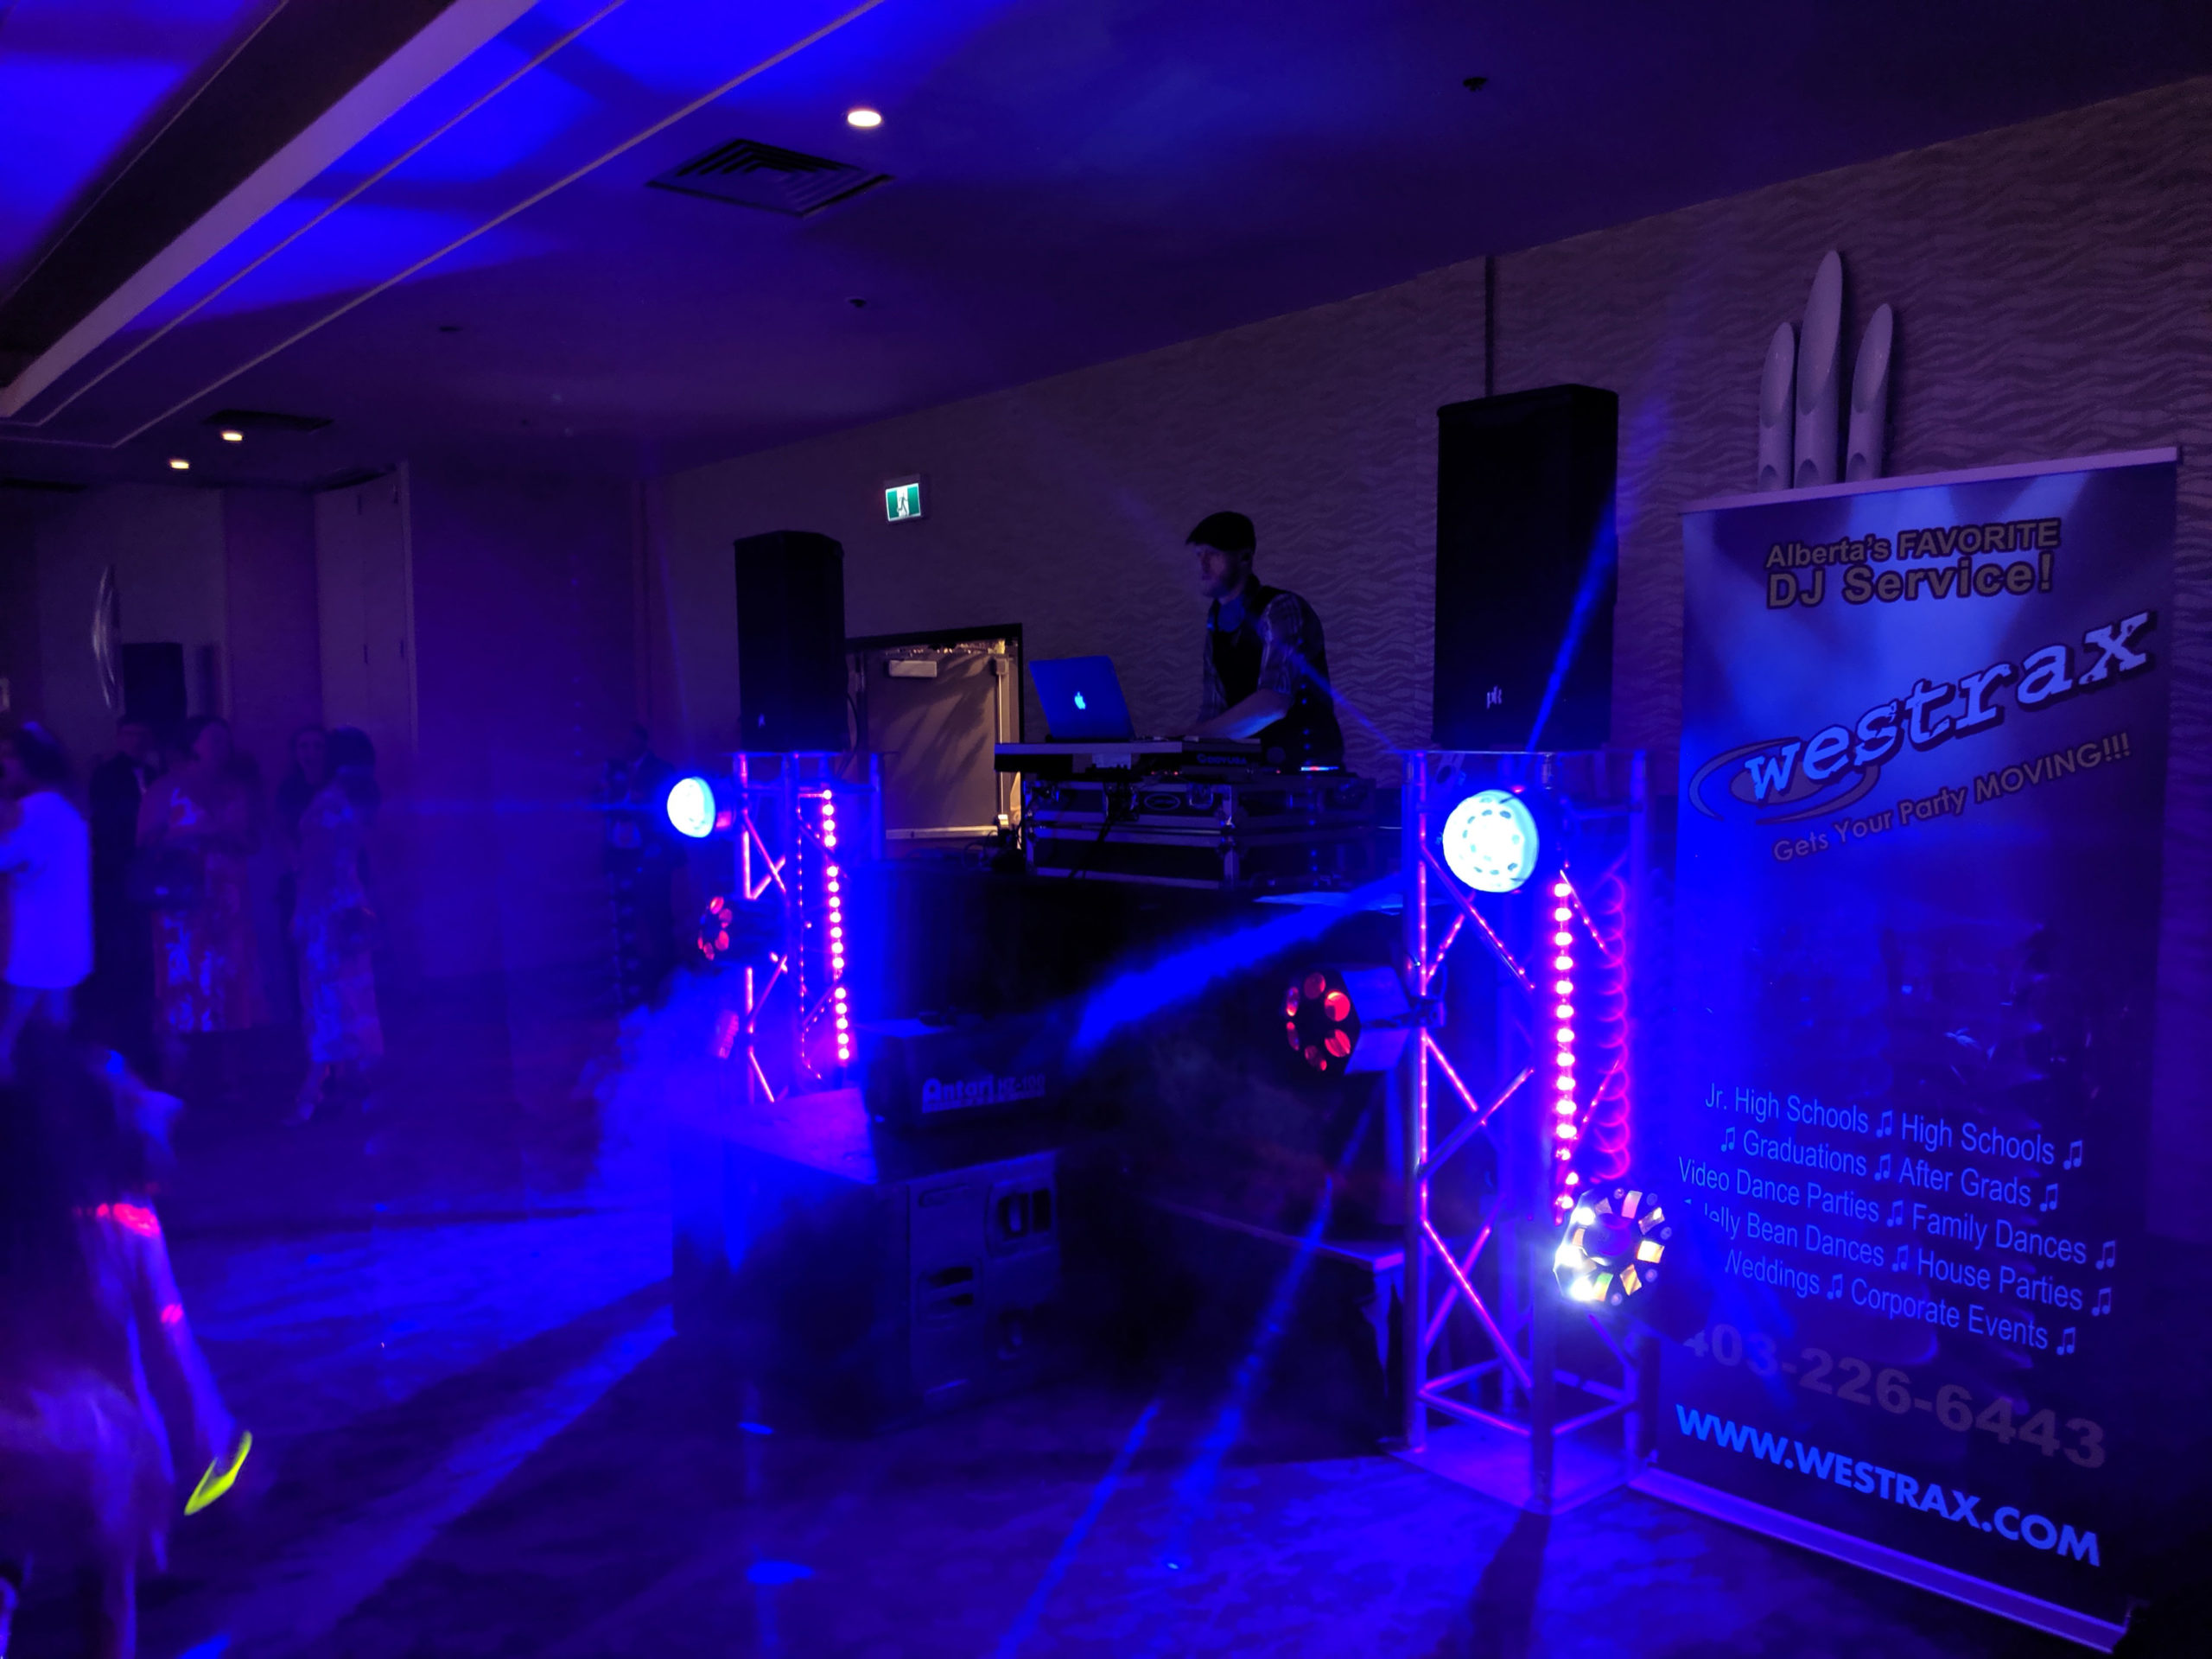 Corporate Event Lighting and DJ Booth